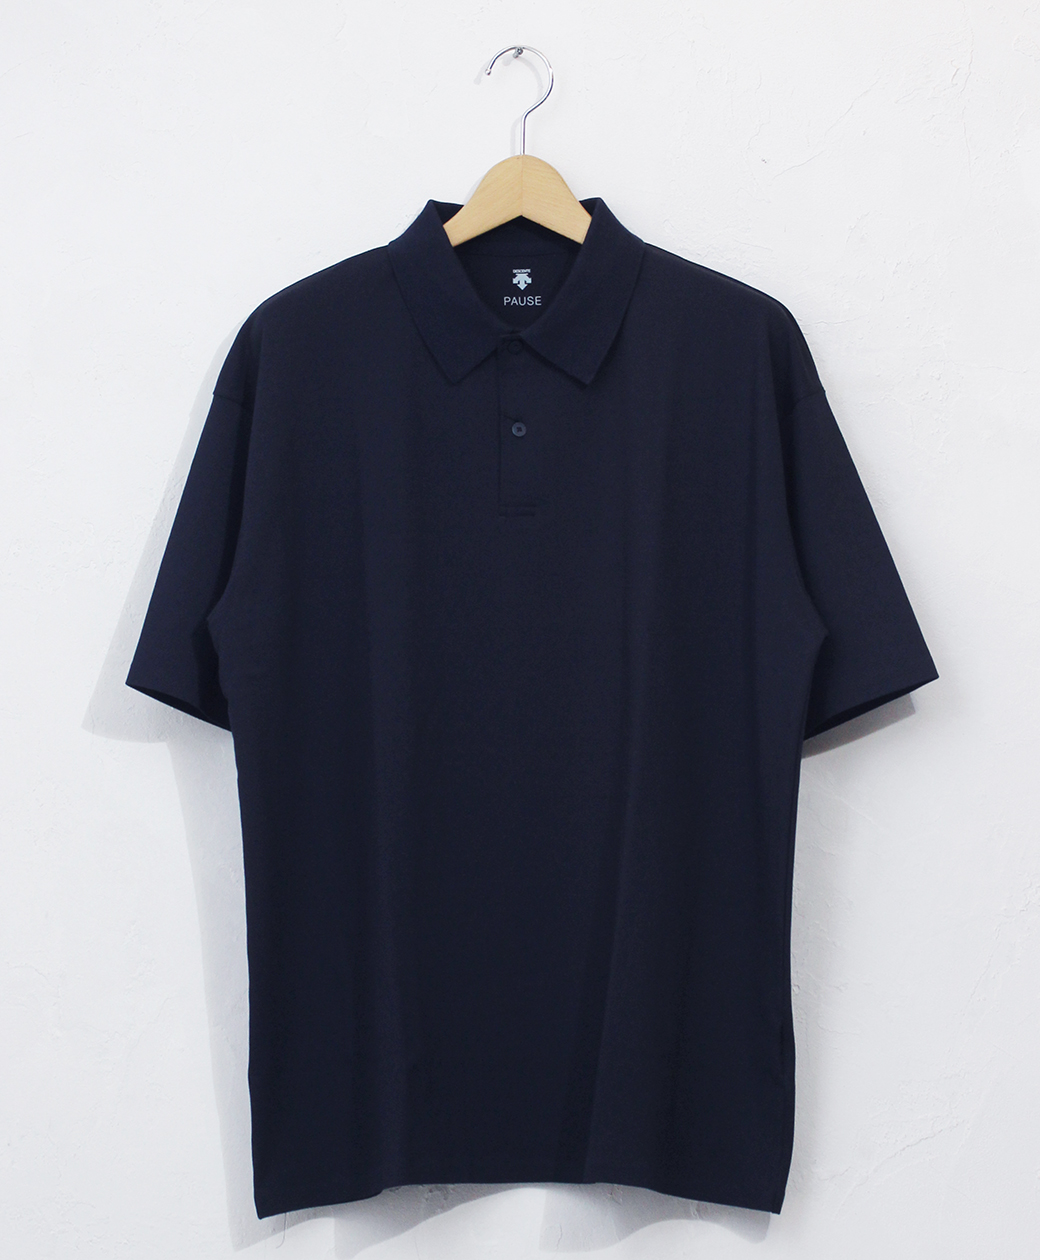 DESCENTE POLO SHIRT(NVY)